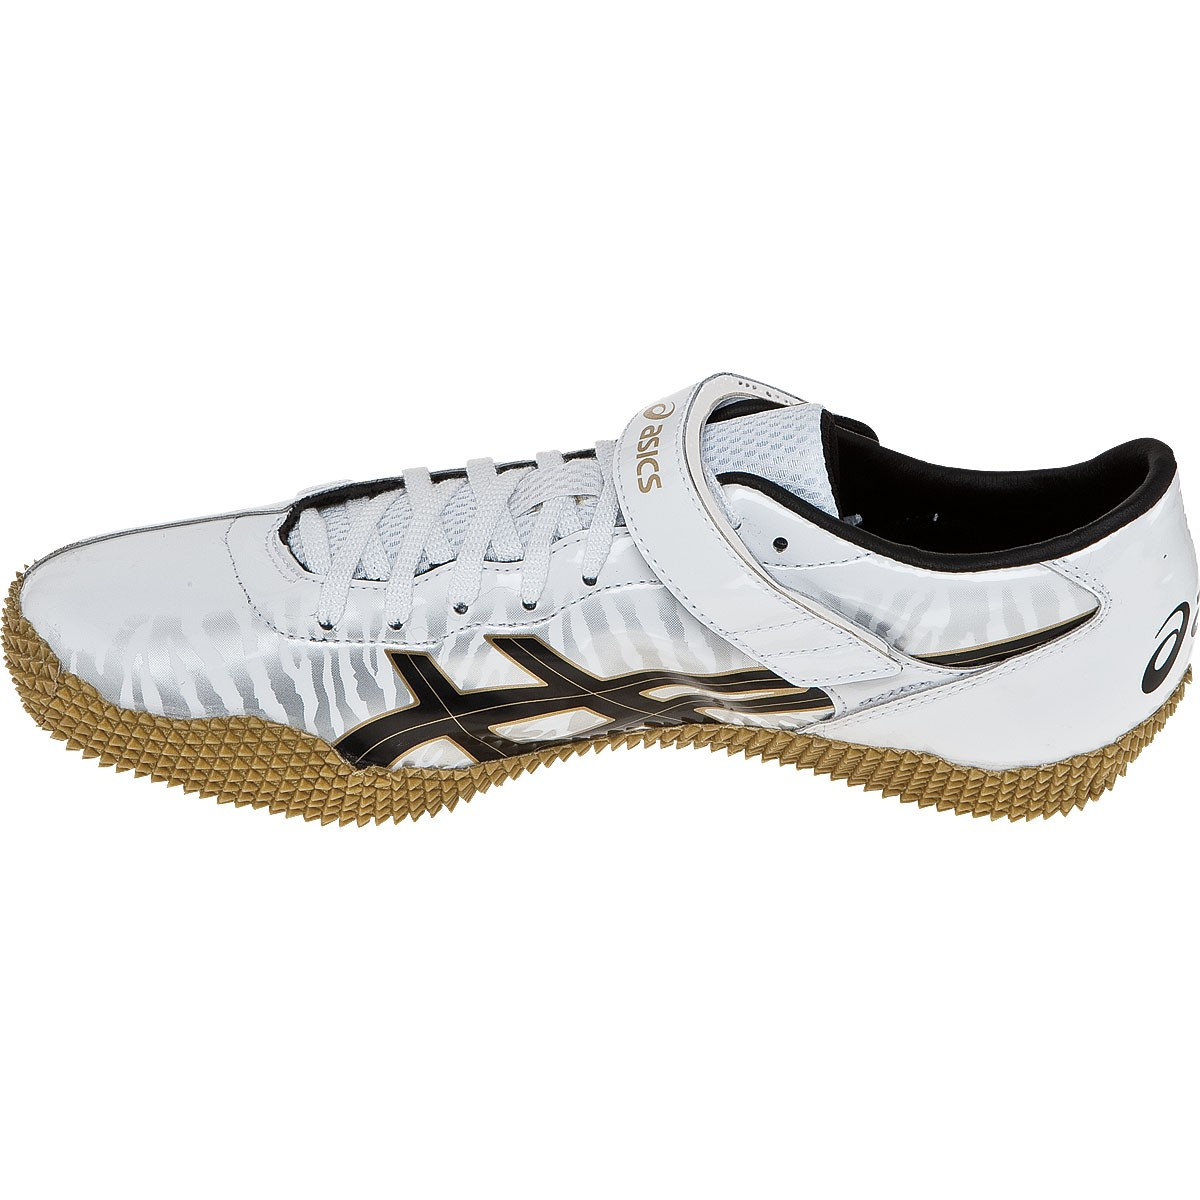 Adidas Adizero High Jump Stability Field Event Spikes Athletics Shoes